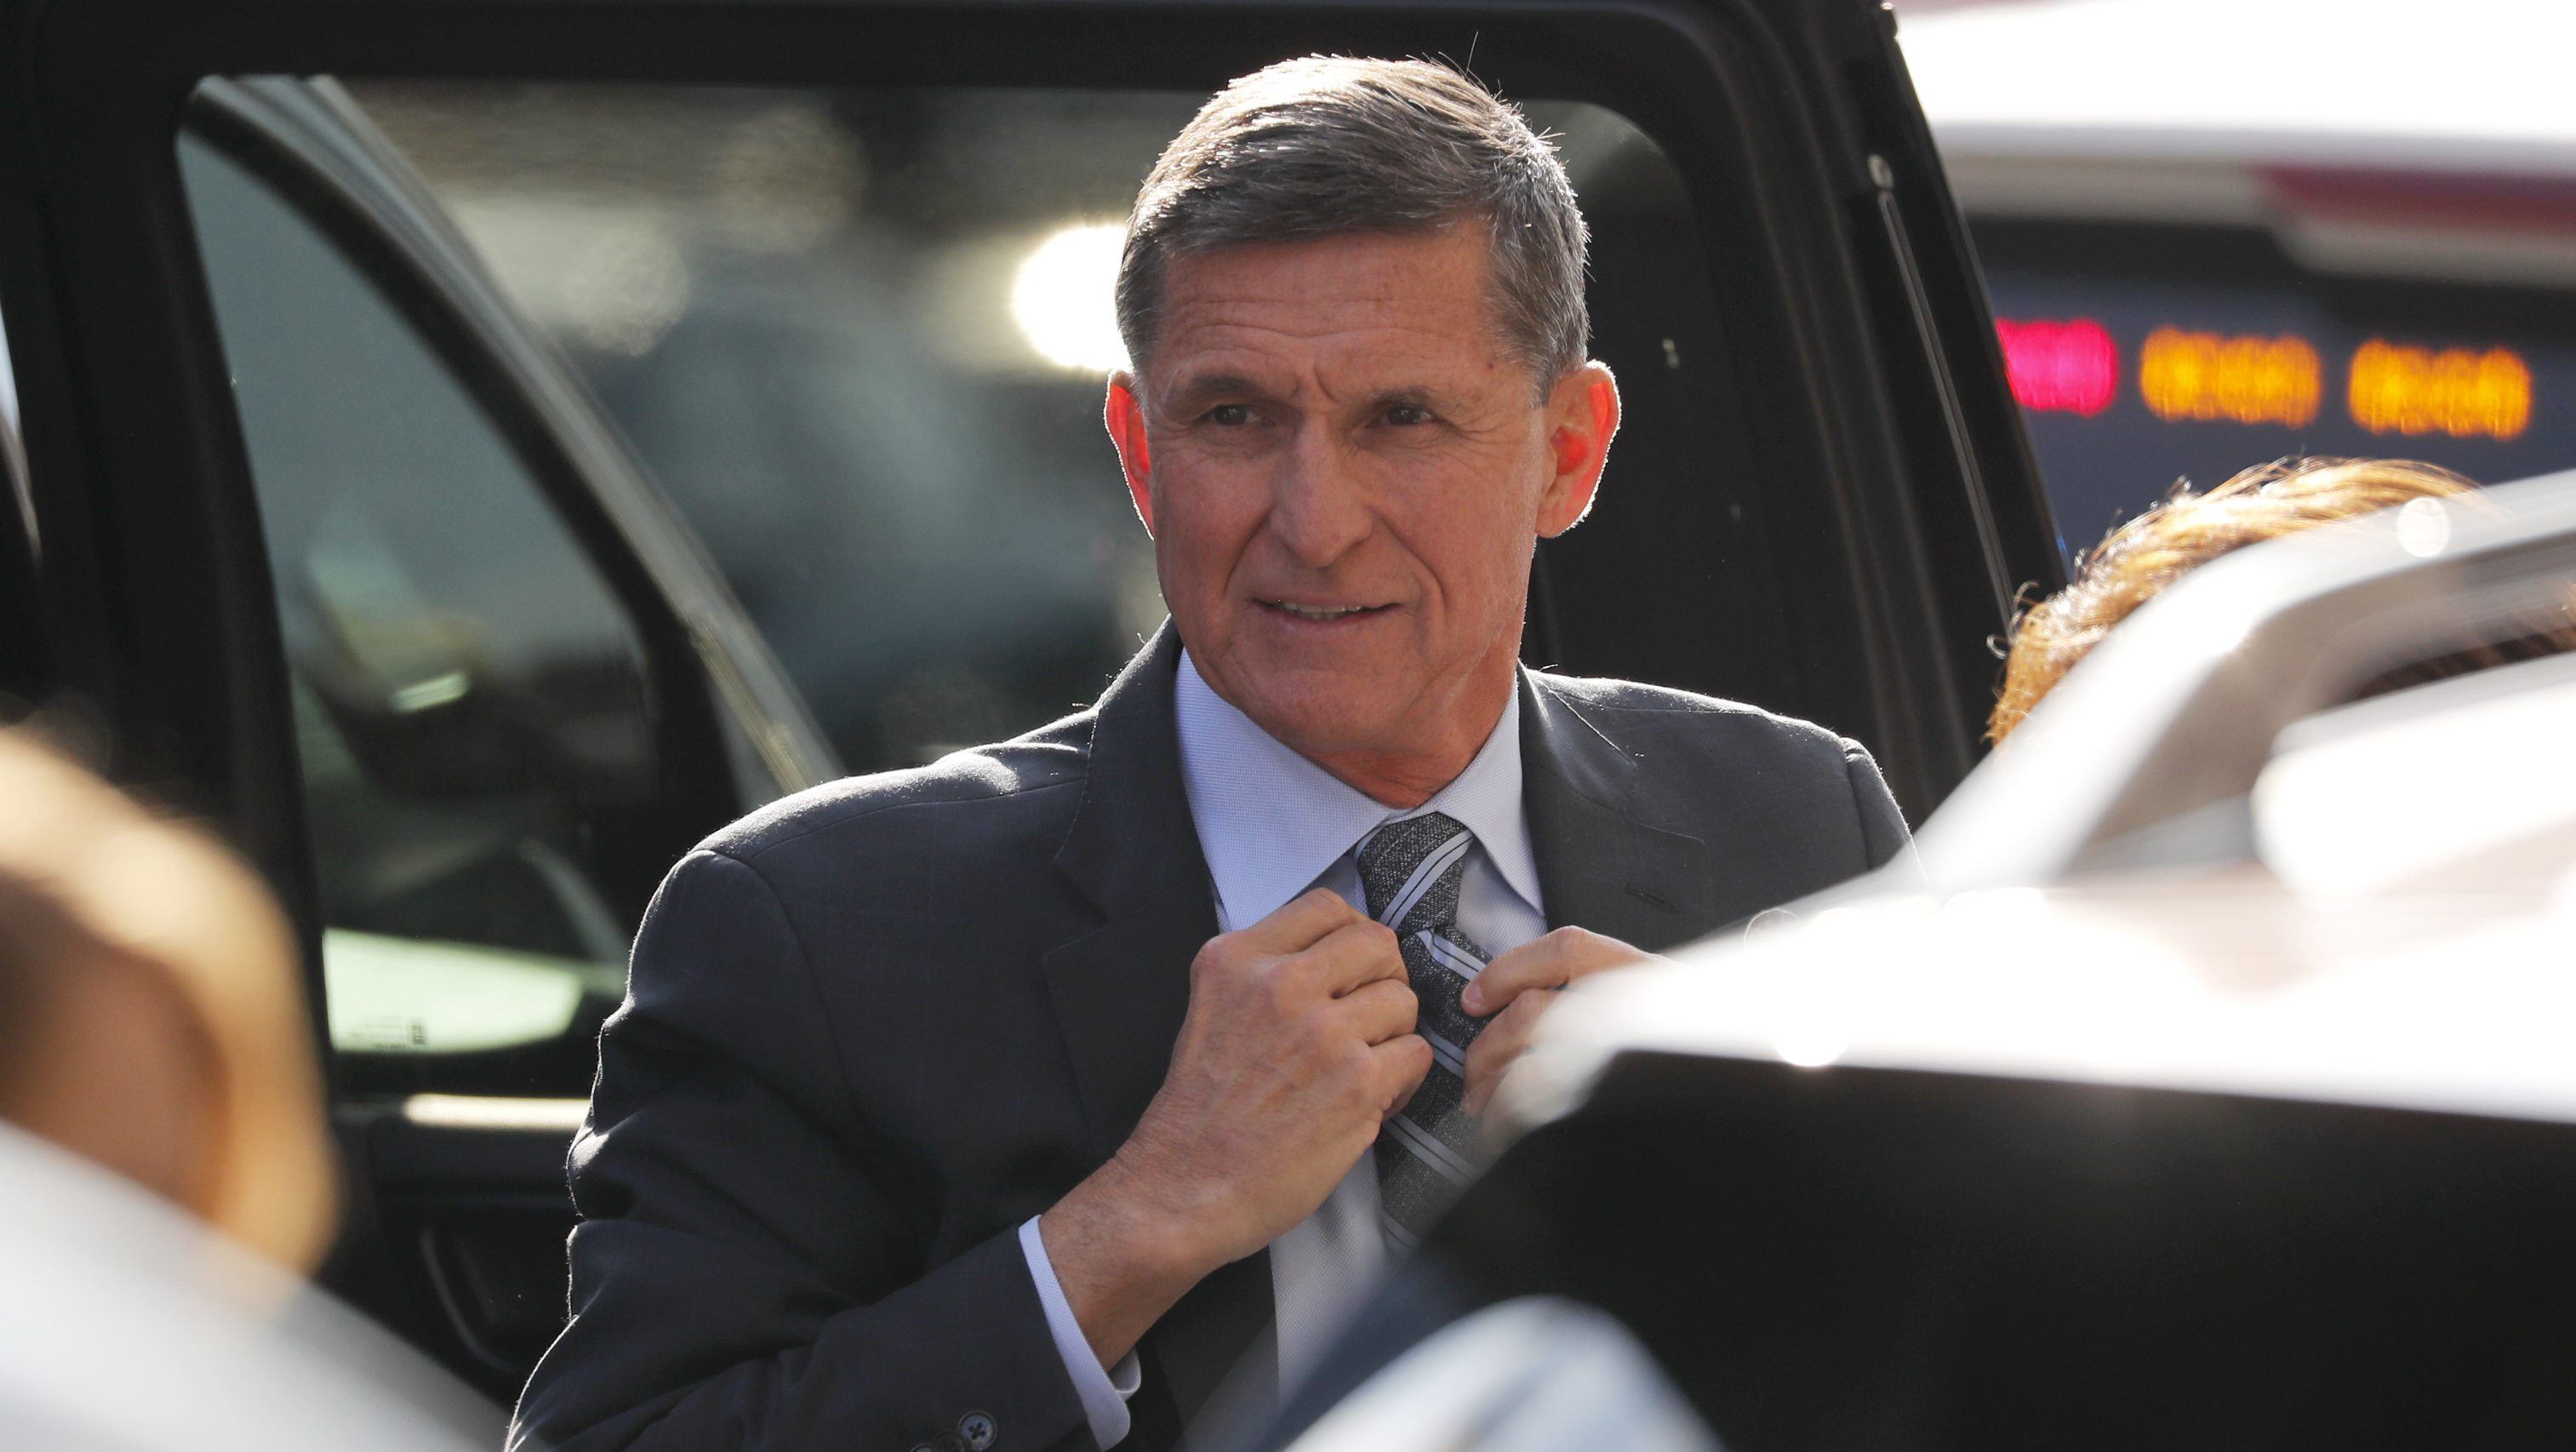 Former U.S. National Security Adviser Michael Flynn arrives for a plea hearing at U.S. District Court in Washington